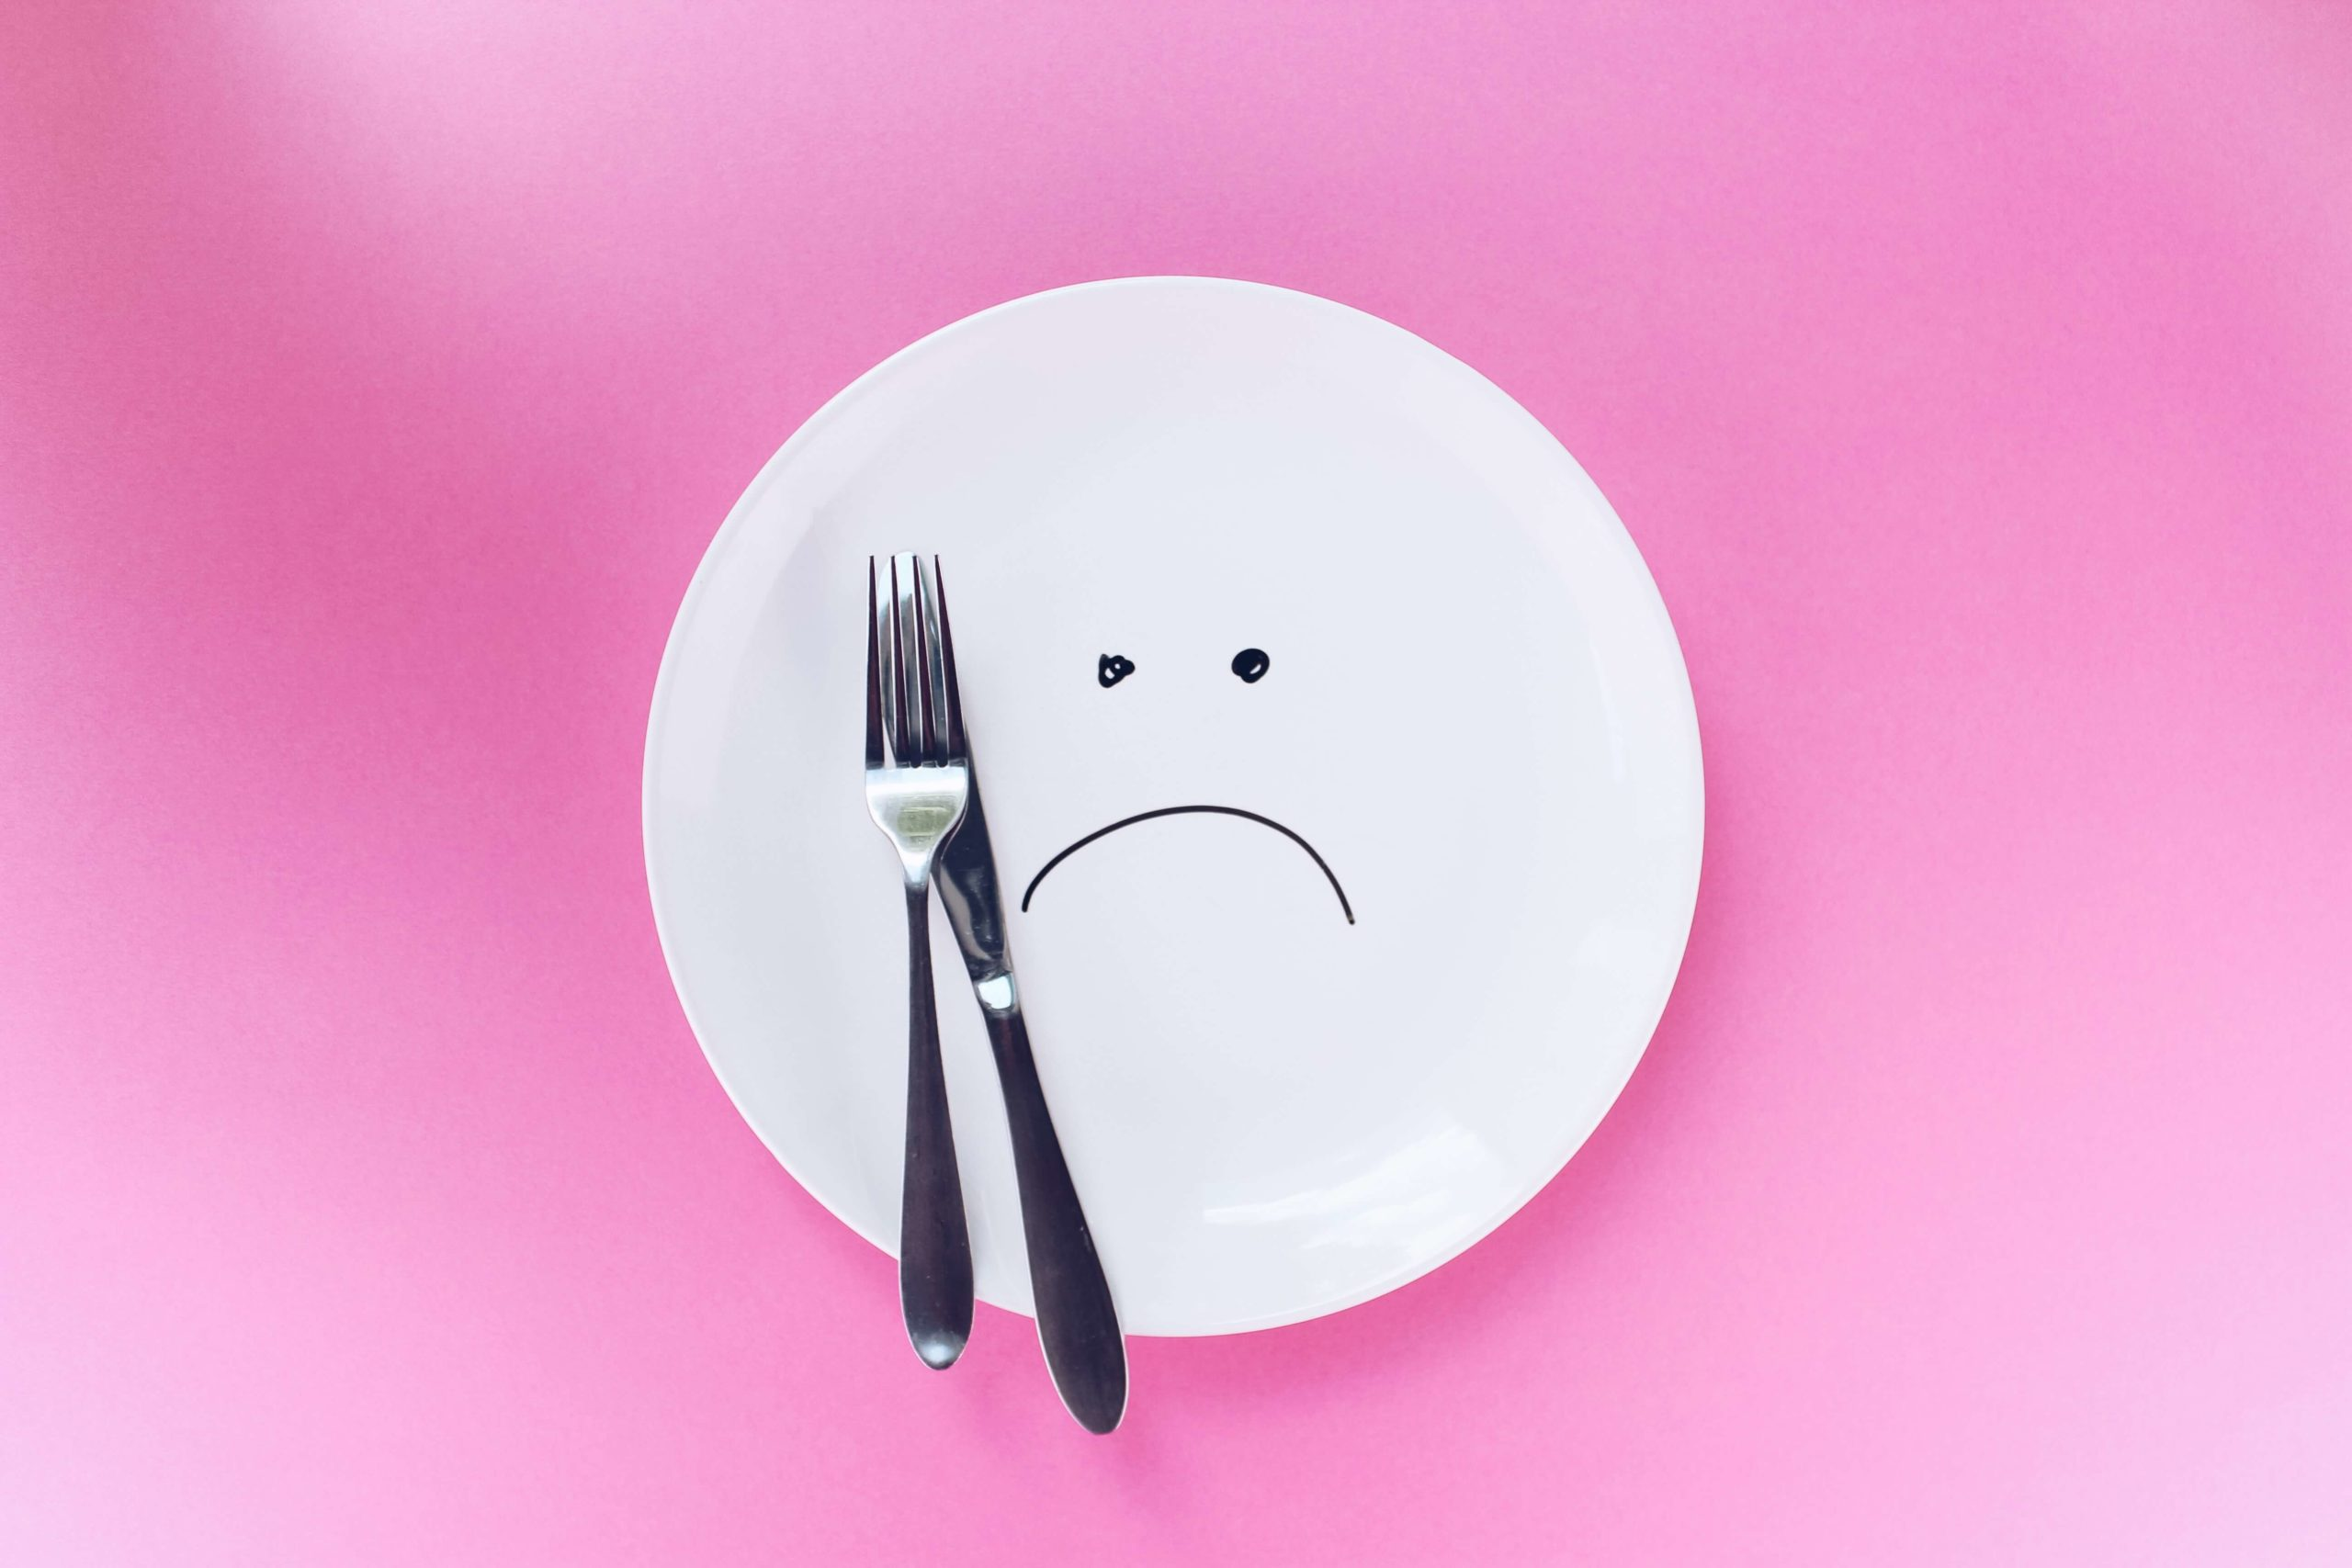 Fad diet. Plate with sad face on it